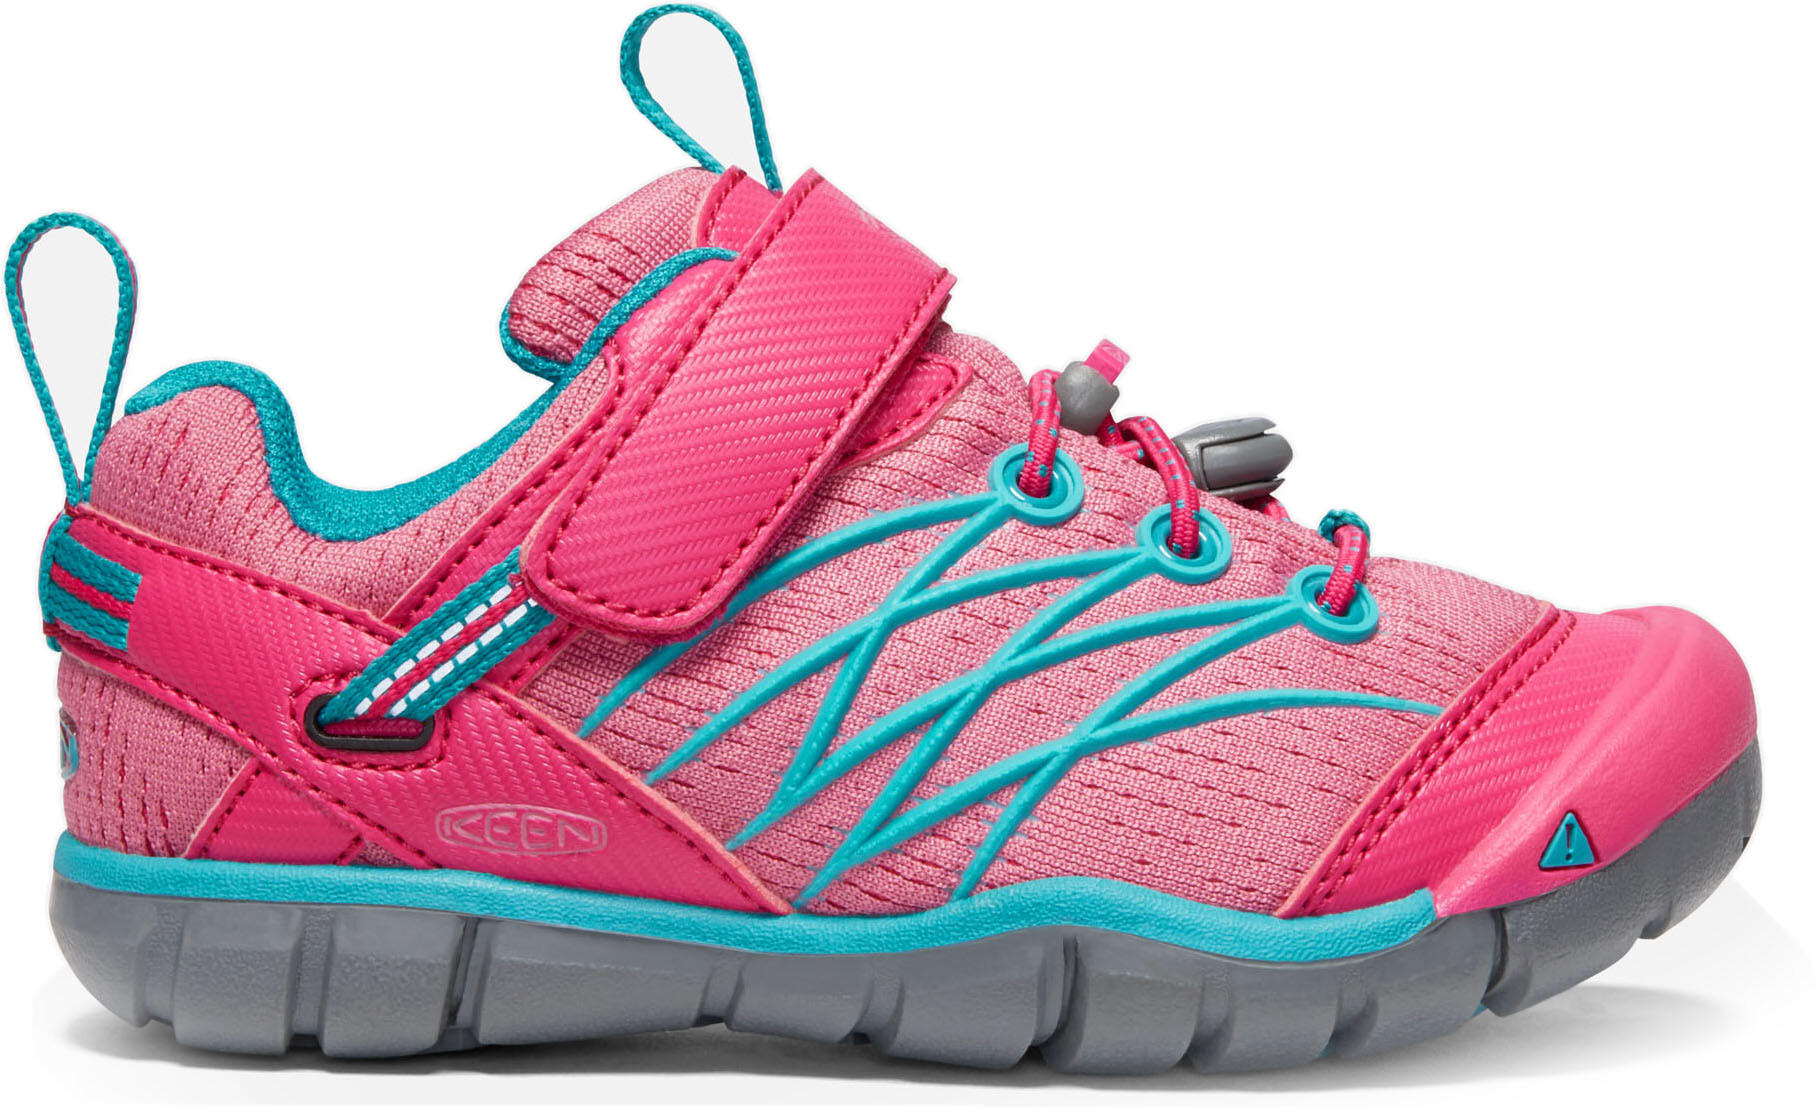 b5c634b17e2 Keen Chandler CNX Shoes Children pink at Addnature.co.uk